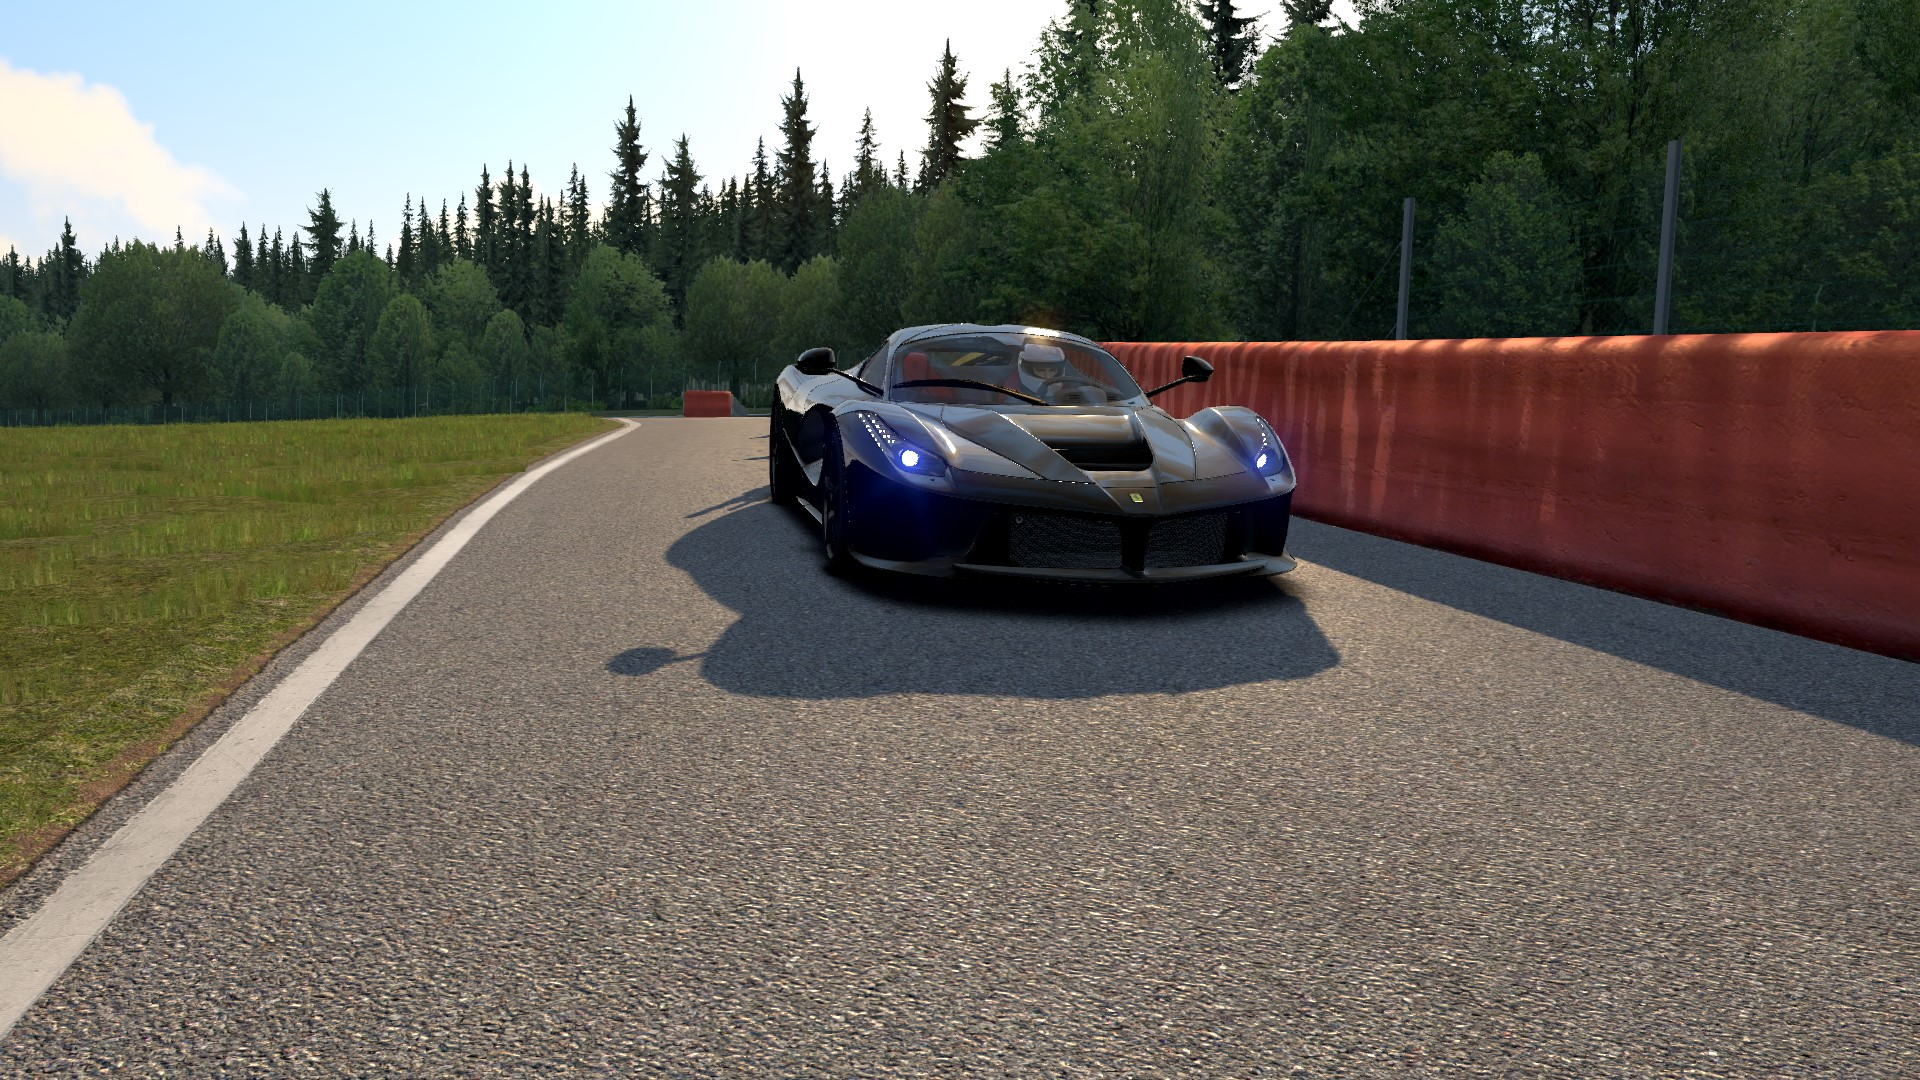 Screenshot_ferrari_laferrari_spa_21-10-2014-15-28-24.jpg